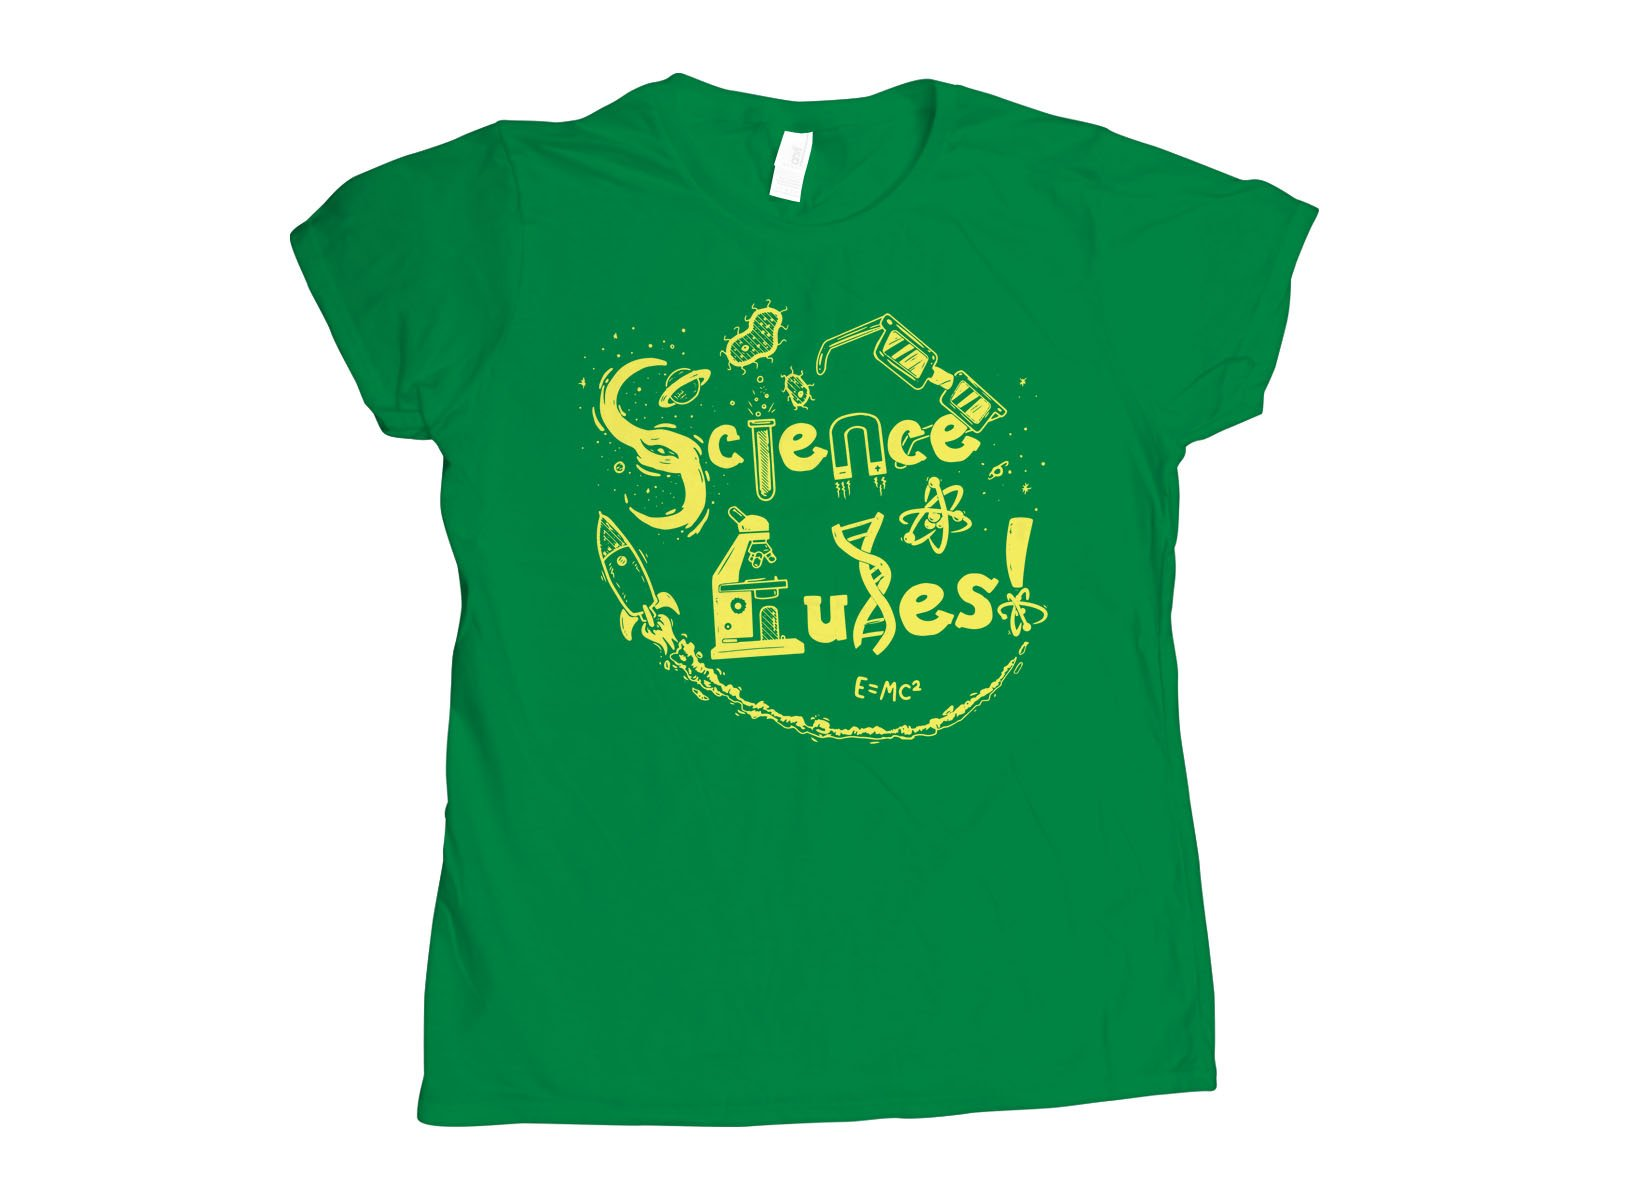 Science Rules! on Womens T-Shirt